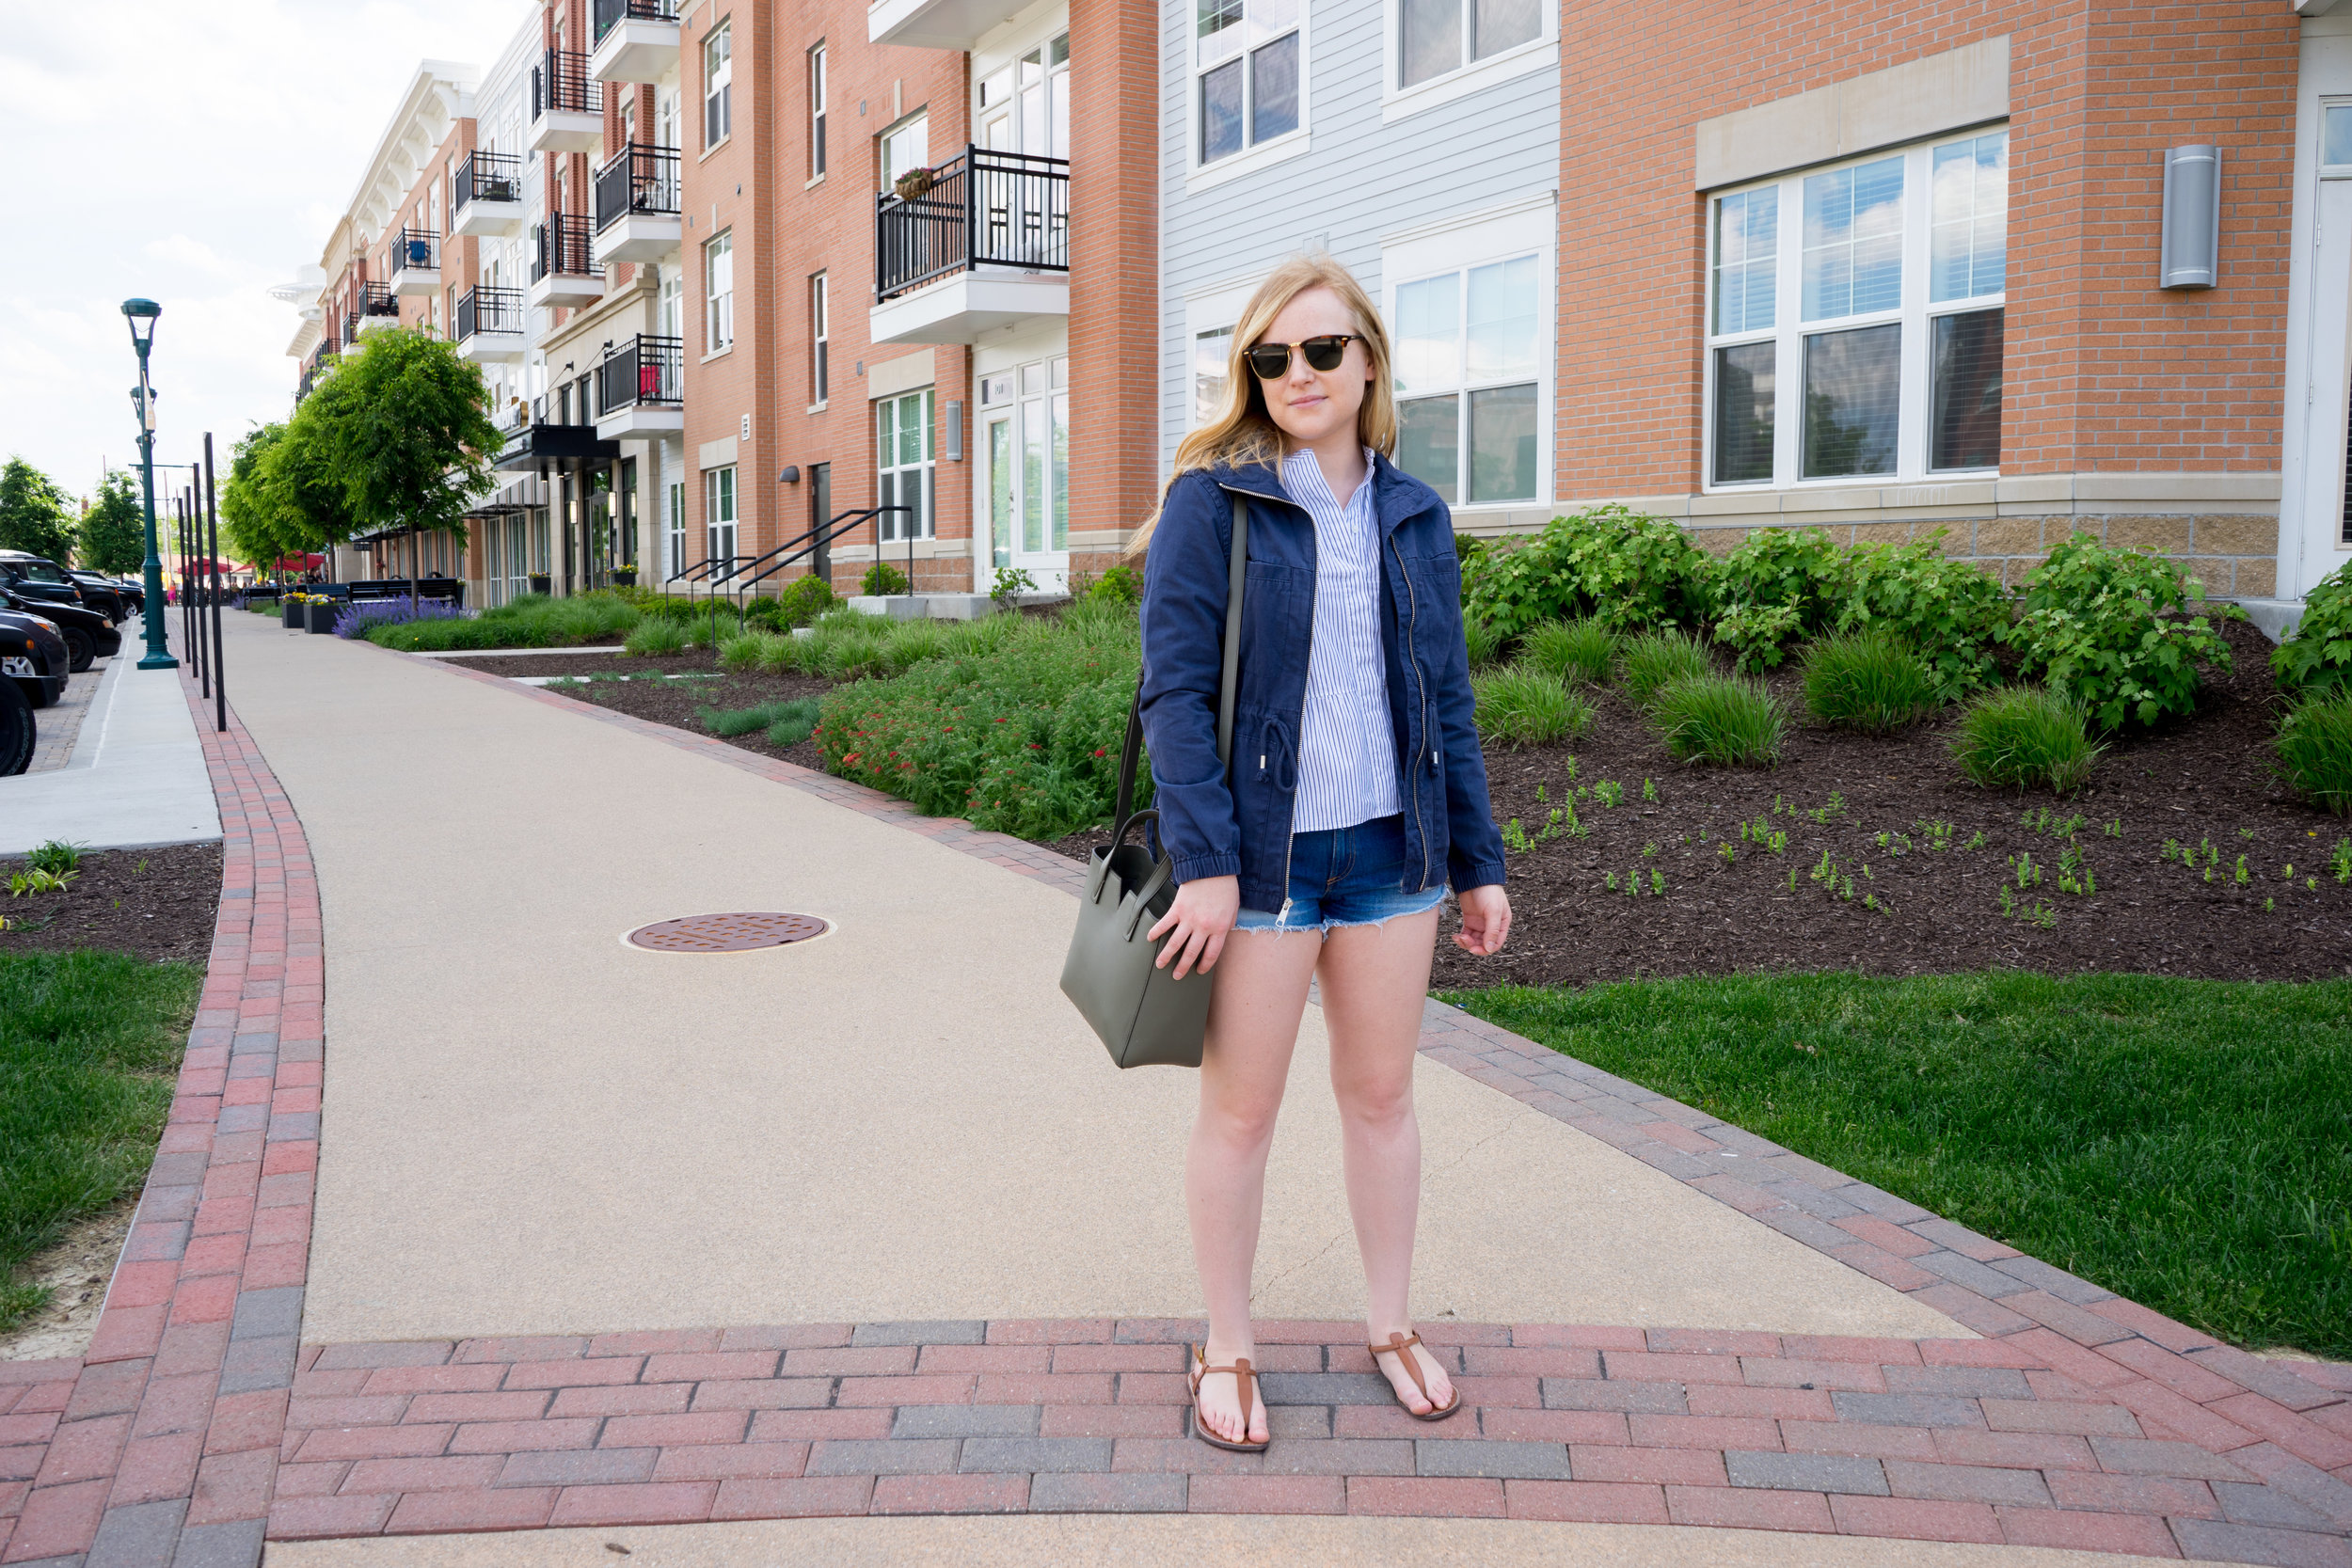 Maggie a la Mode - Old Navy Twill Field Jacket, Madewell Lakeside Peplum Shirt Stripe, Rag & Bone/JEAN The Cutoff Denim Shorts Freeport, Vince Signature Baby East-West Tote, Sam Edelmaln Gigi Sandals